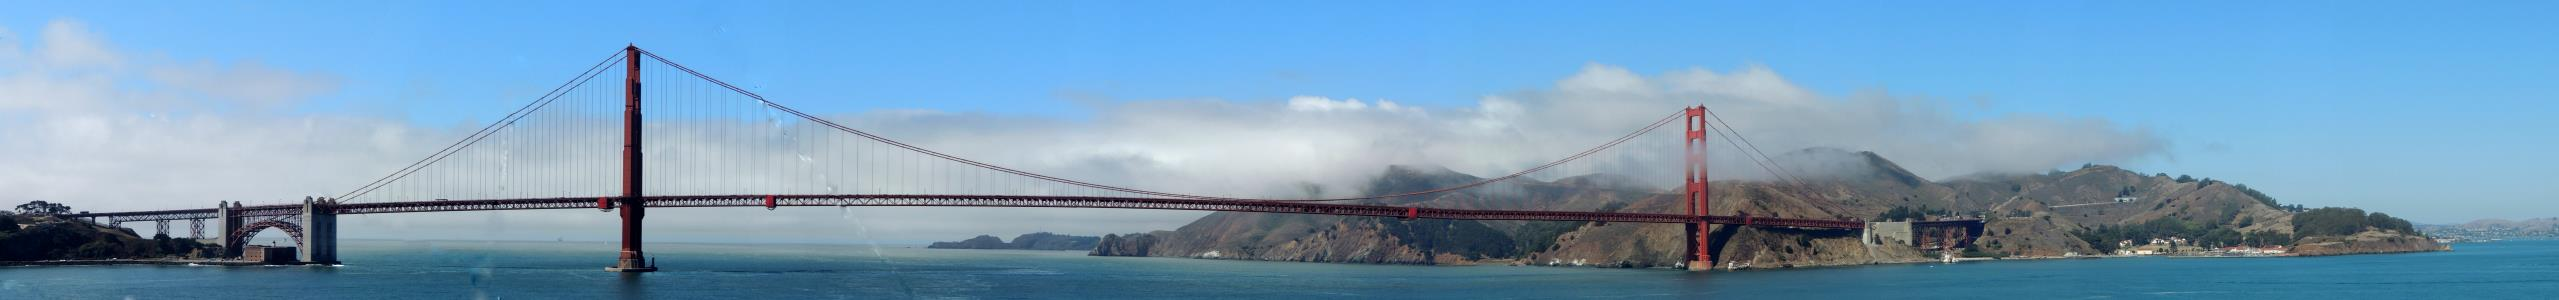 Name: Golden Gate panorama 2014 Camera make:  Model:  Software: ArcSoft Panorama Maker 6